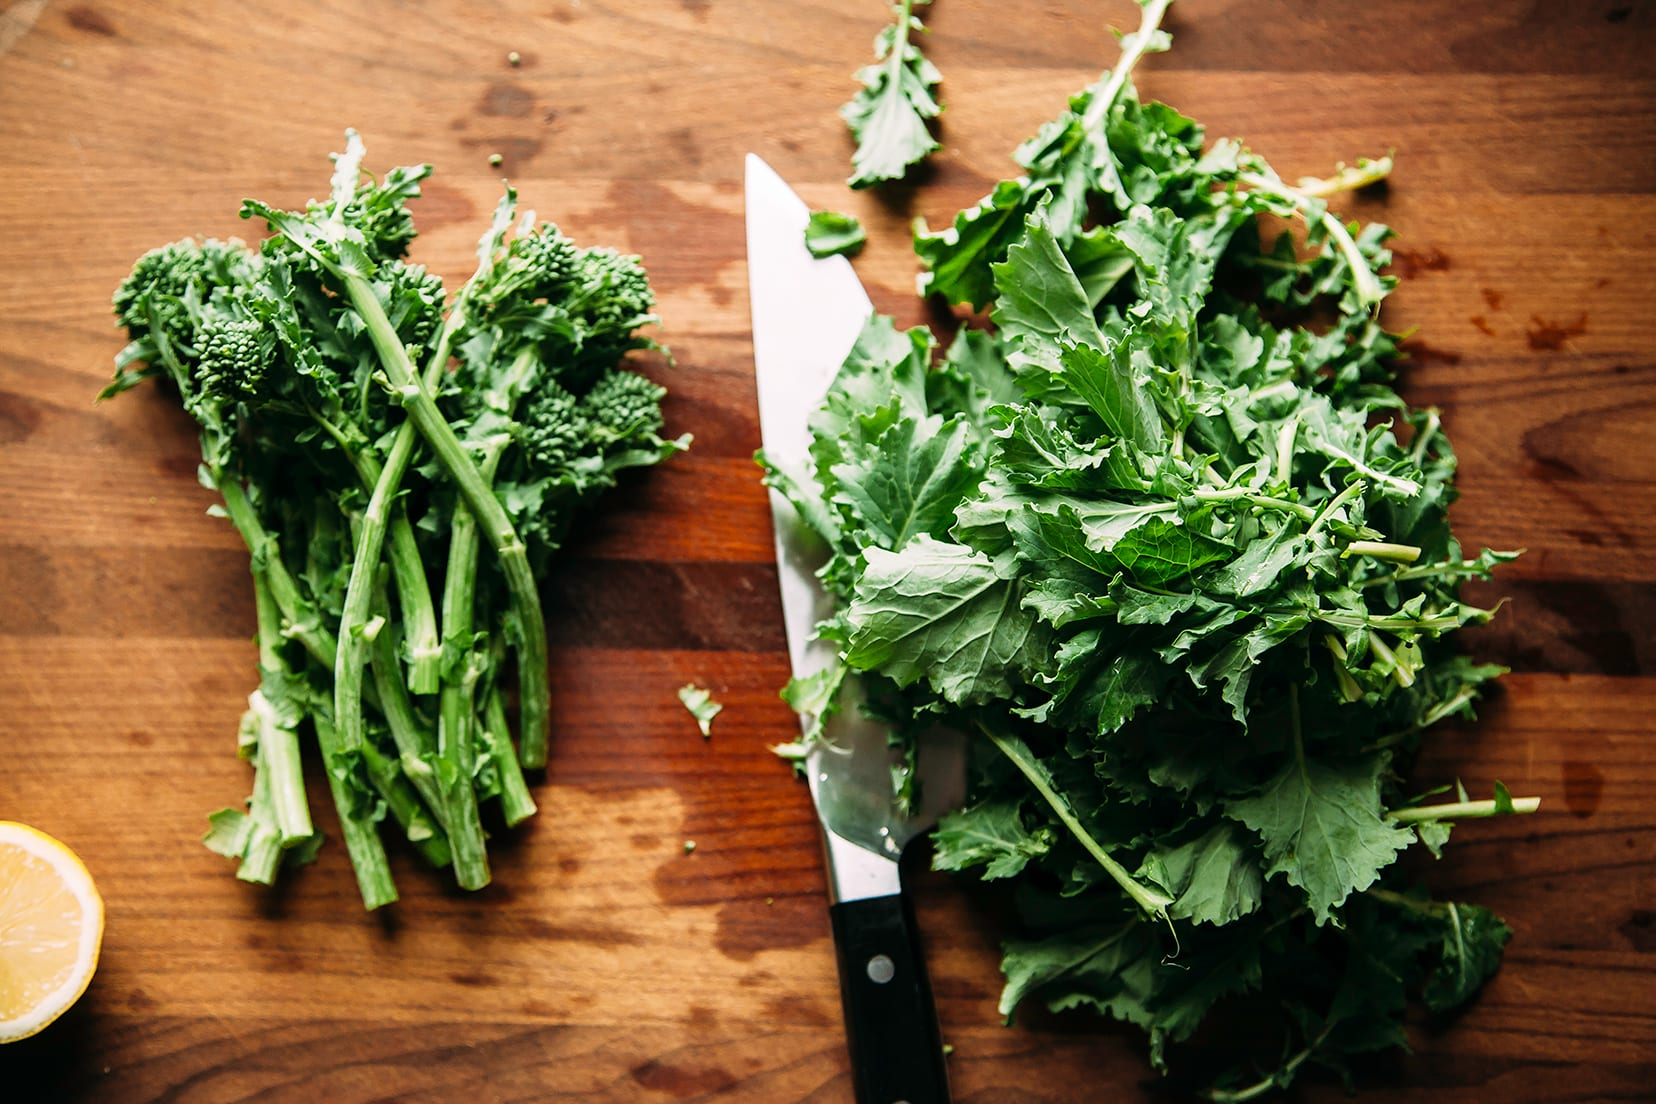 Overhead shot of trimmed broccoli rabe stalks and leaves on a wood cutting board.